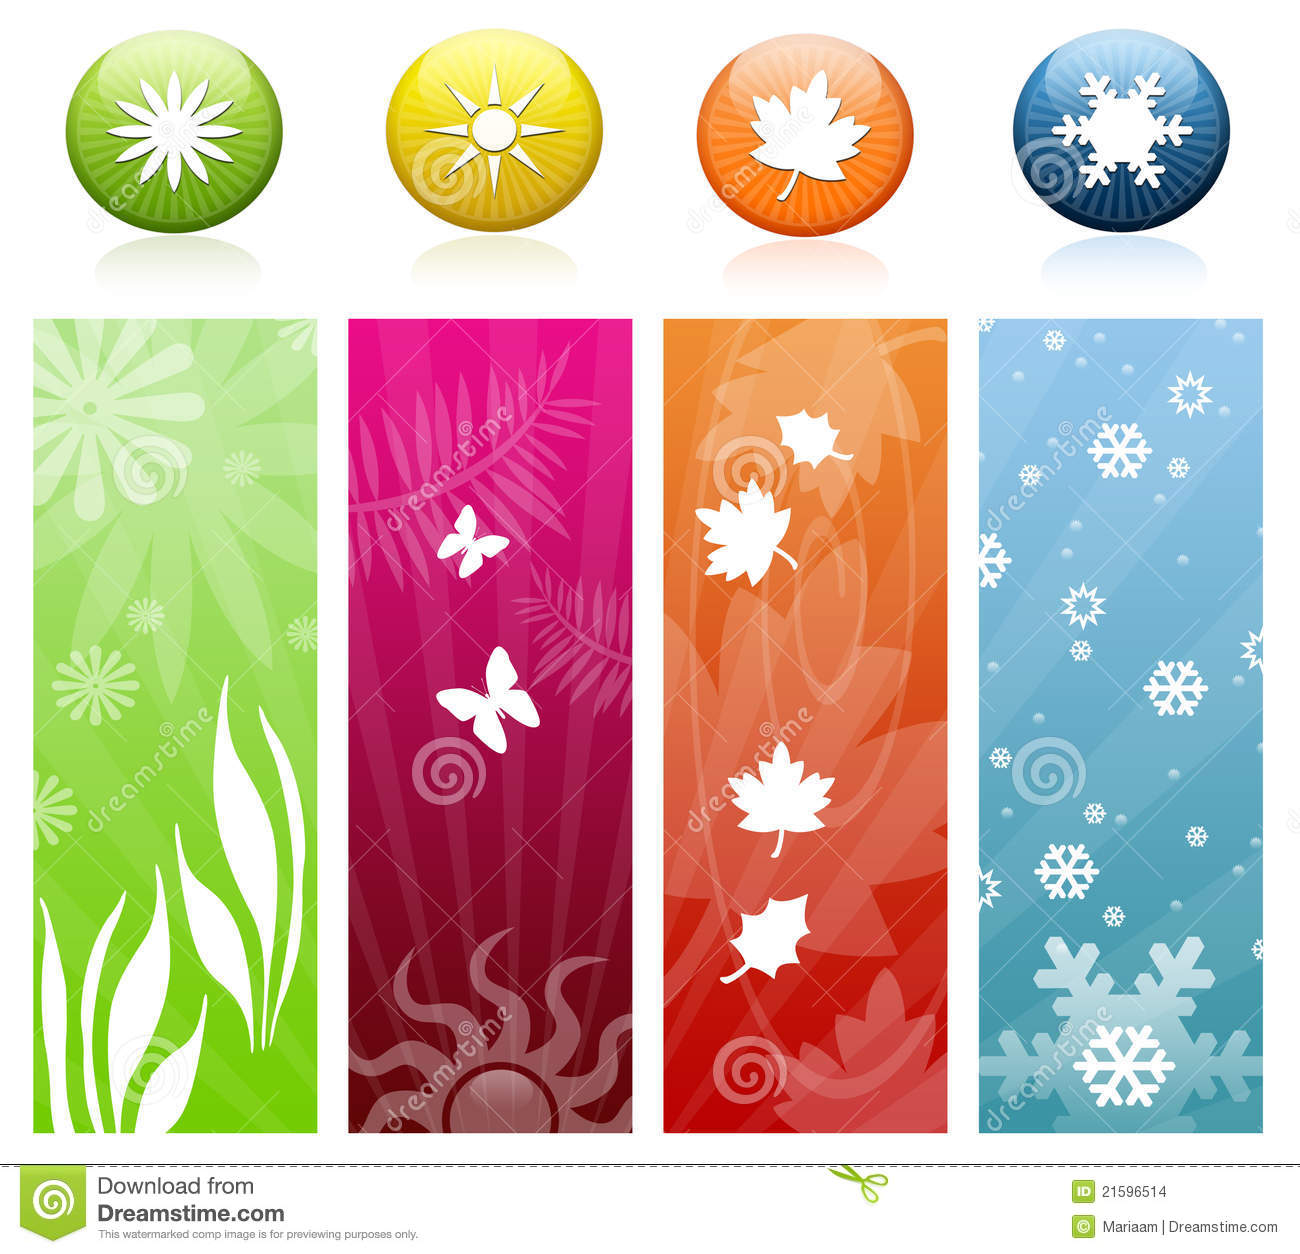 the four seasons icons banners stock illustration illustration